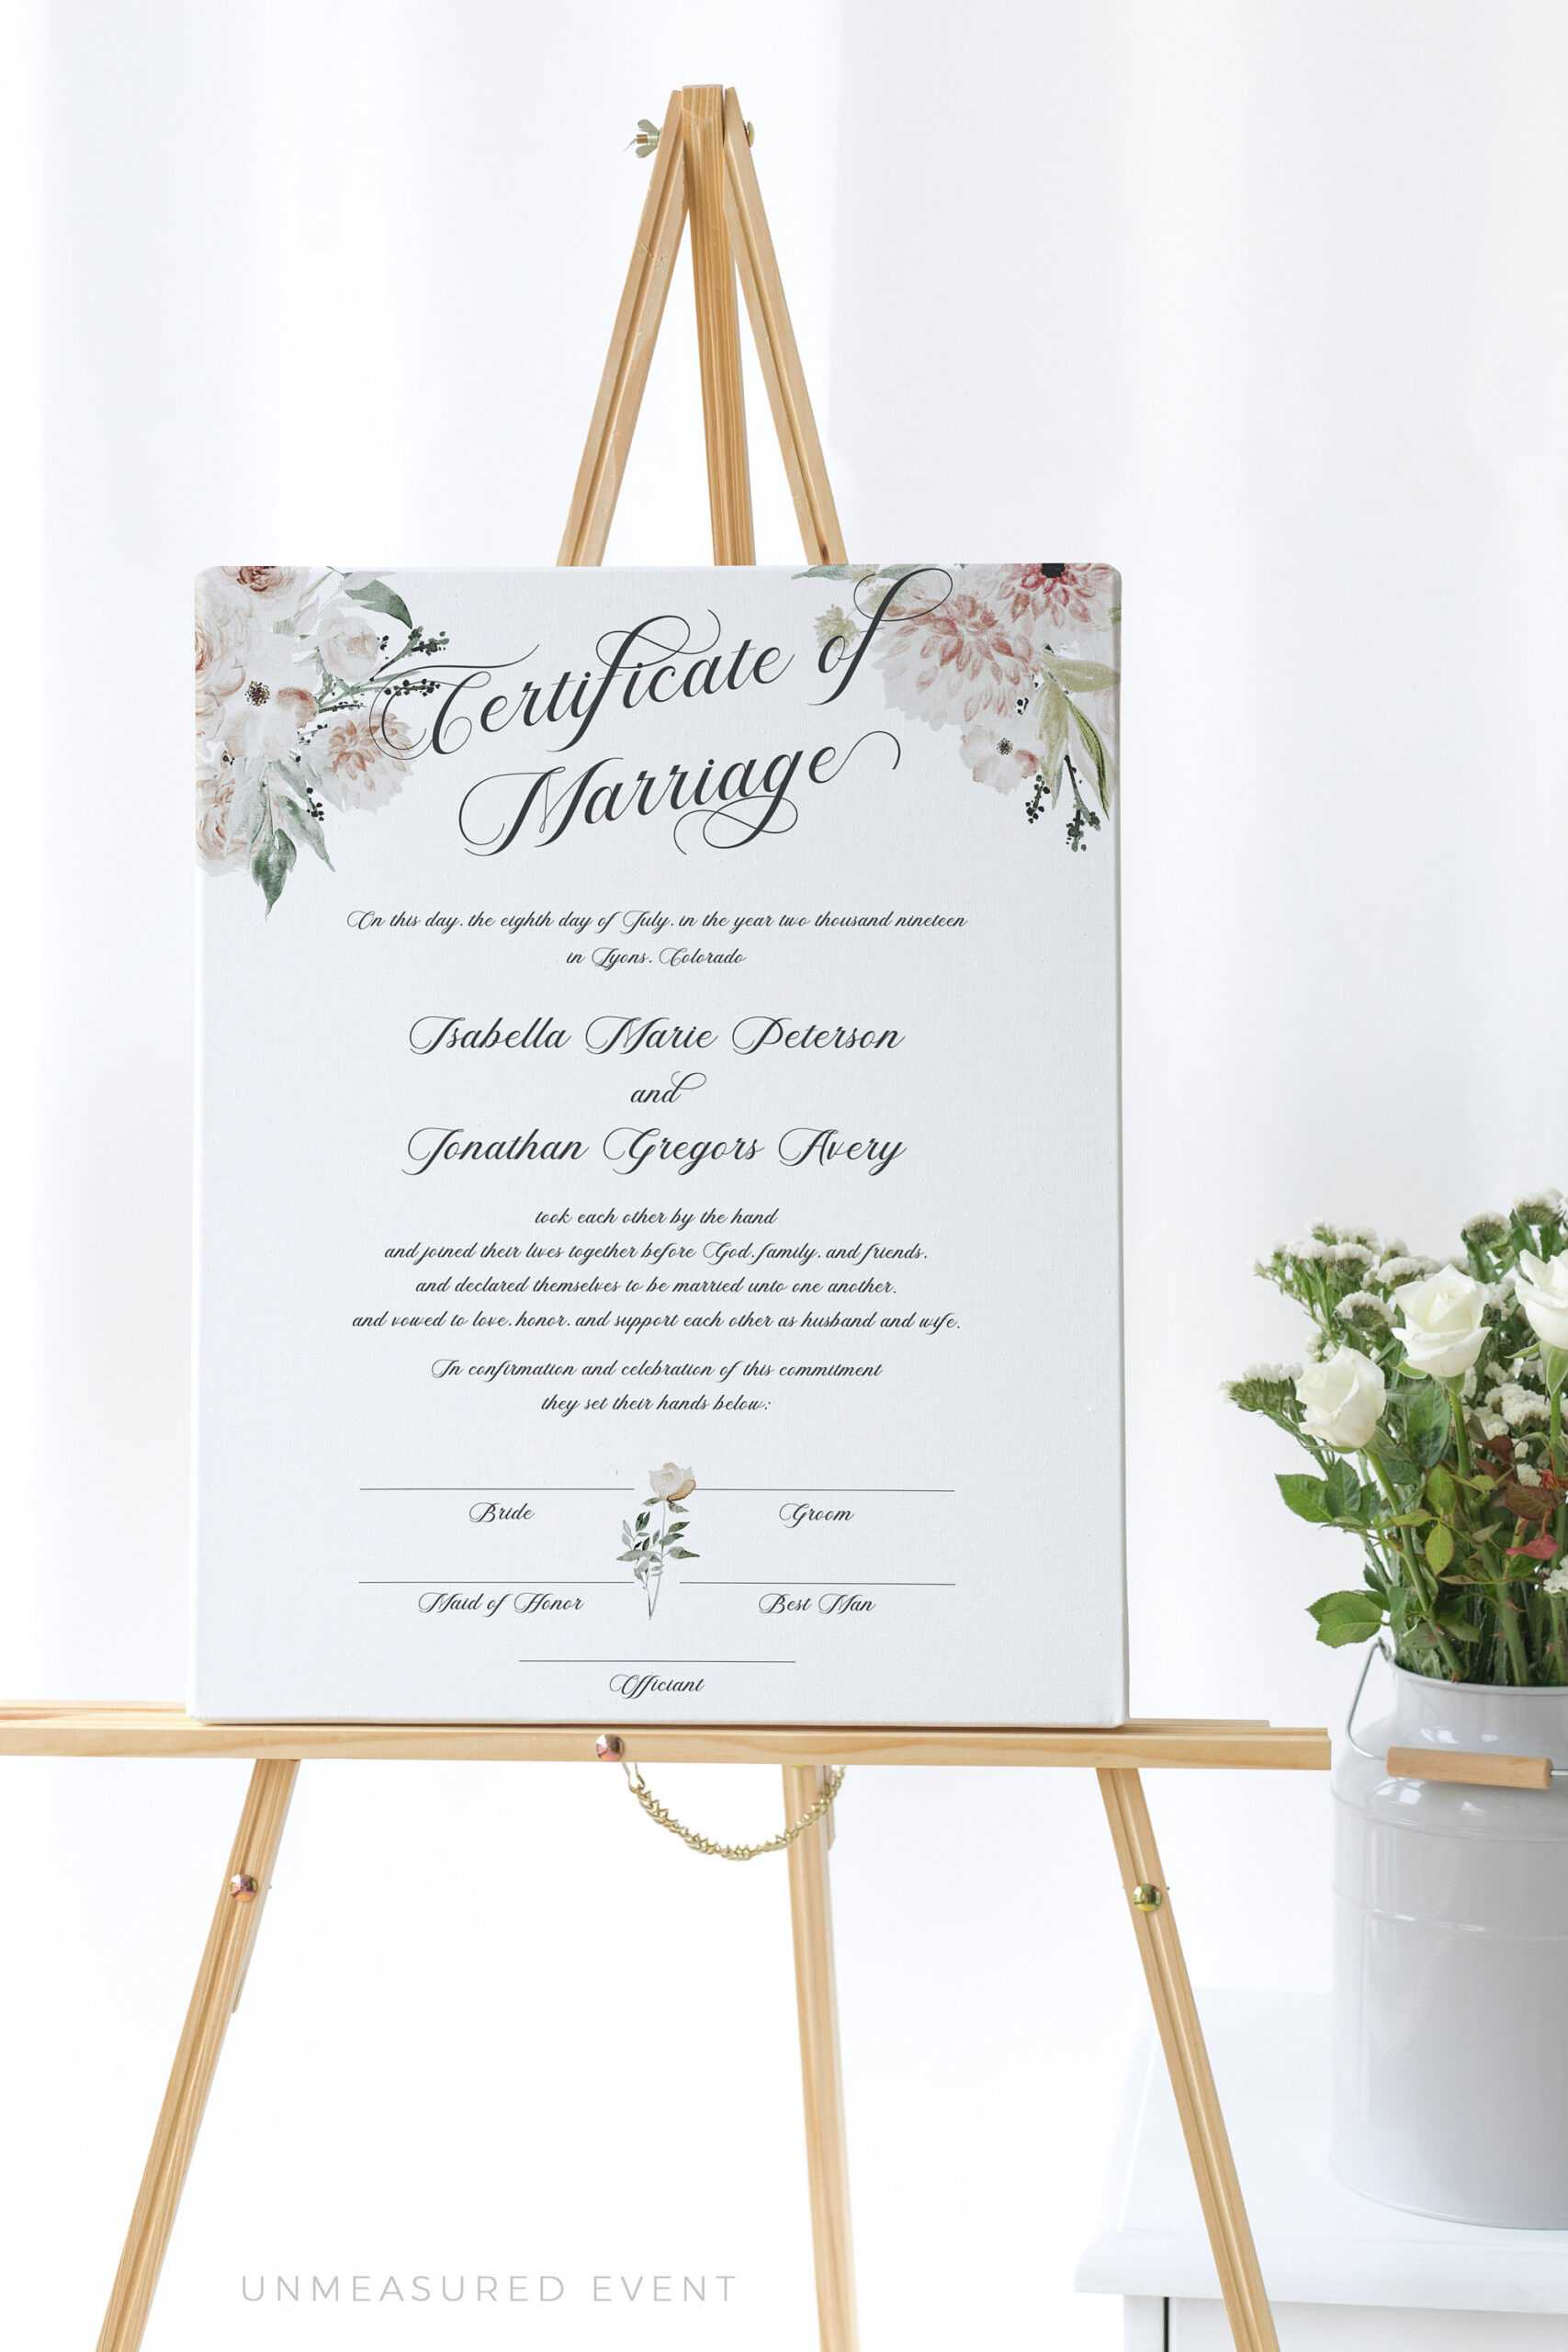 Blush Floral Marriage Certificate Template, Certificate Of Marriage,  Instant Download Wedding Vows, Marriage Certificate Download, #0029A for Certificate Of Marriage Template